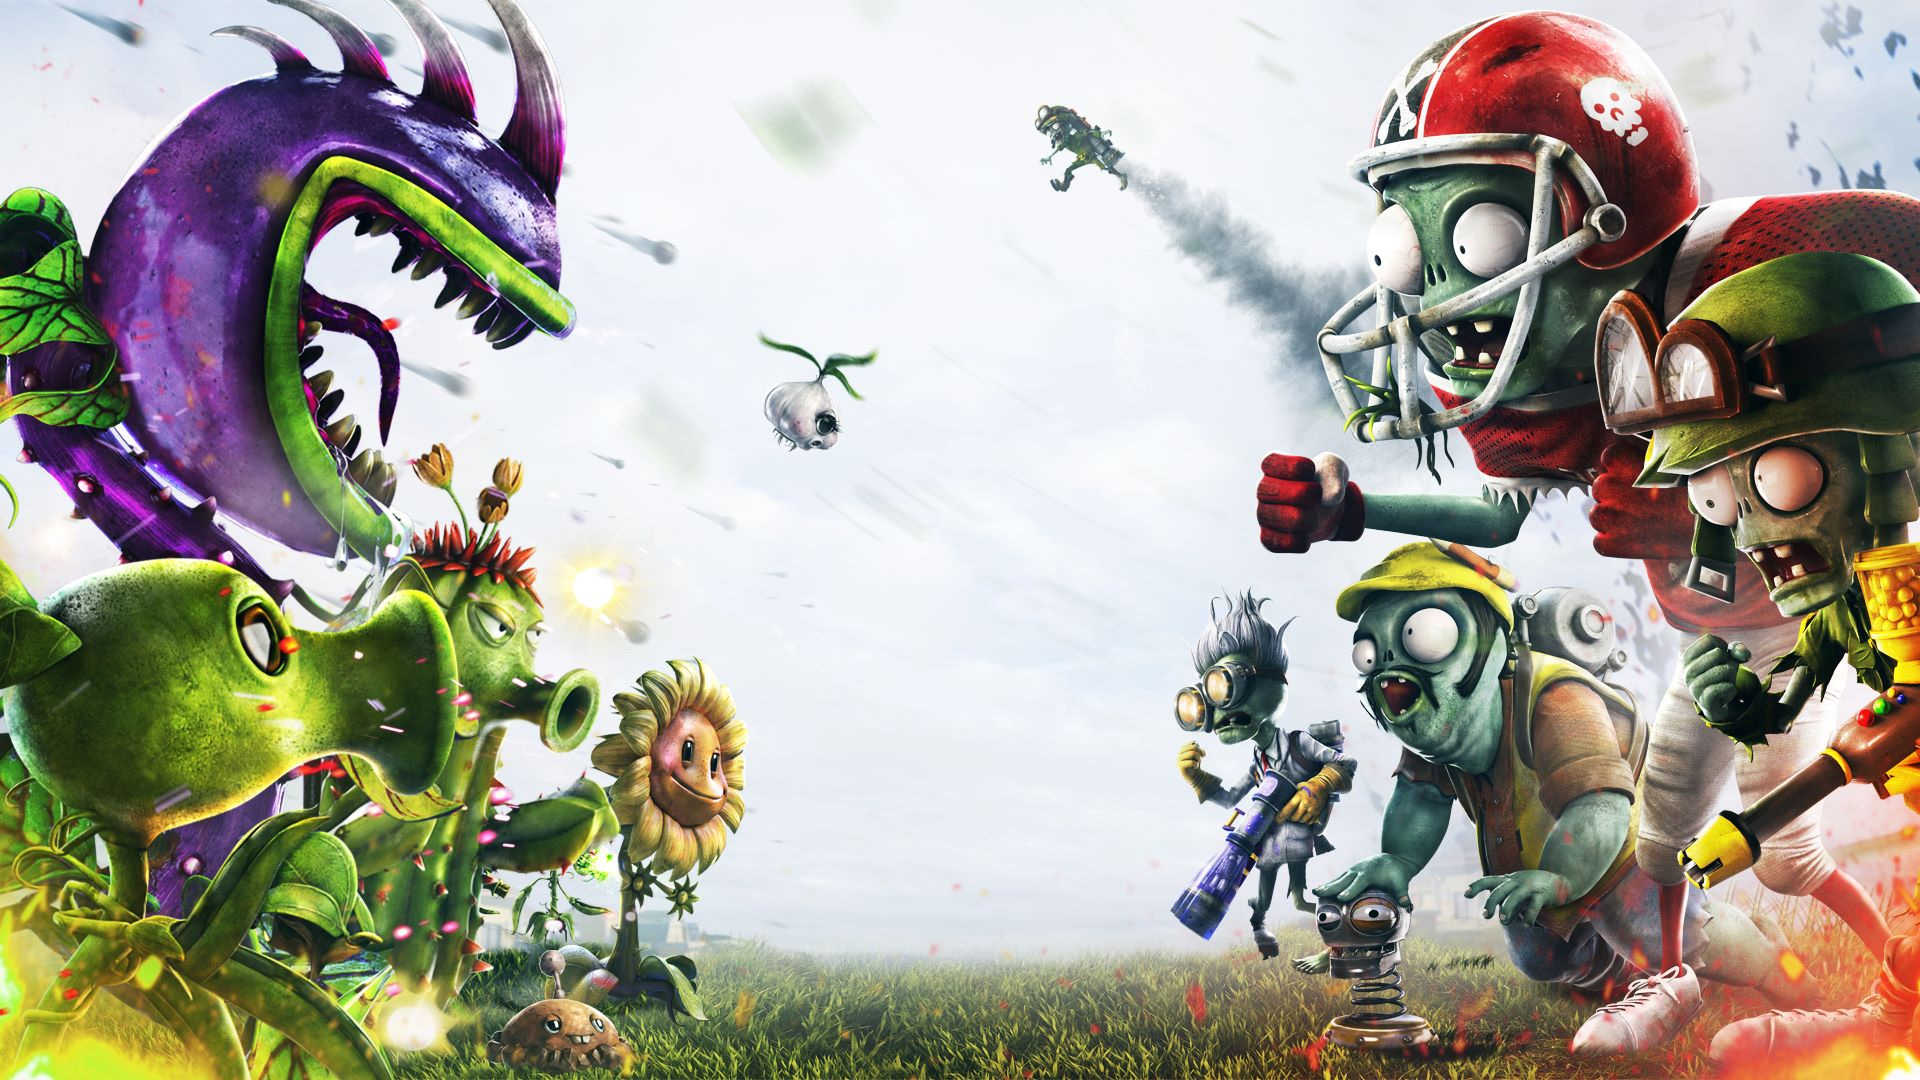 Plants vs. Zombies: Garden Warfare 2 is getting the first game's best map screenshot